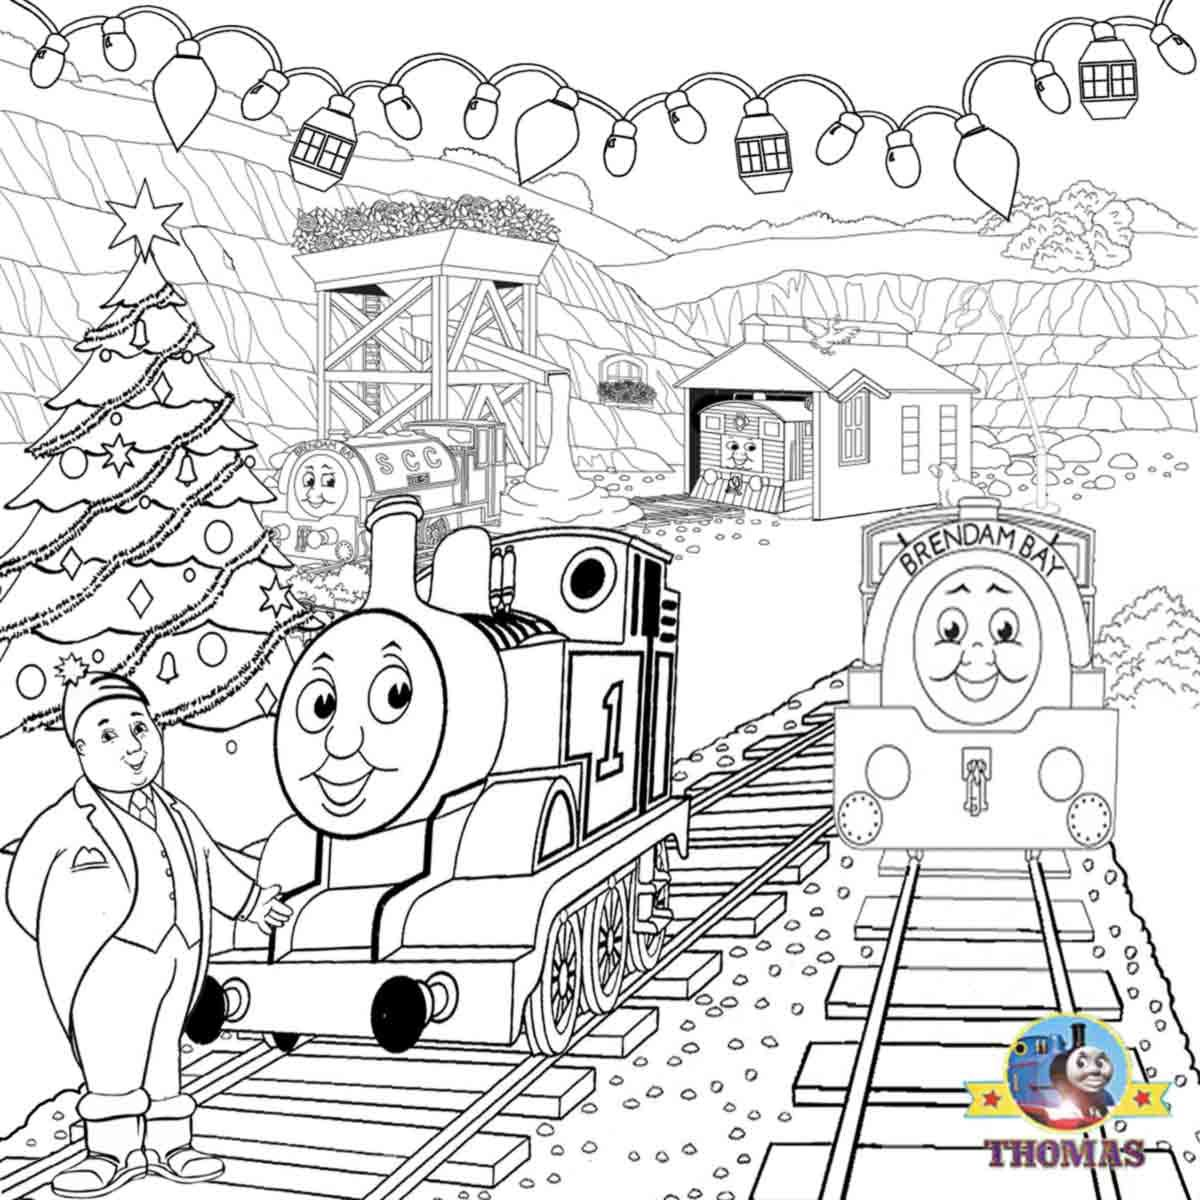 Fun Activities Printable Thomas Train And Friends Christmas Party Happy Xmas Coloring In 2020 Train Coloring Pages Free Christmas Coloring Pages Coloring Pages Winter